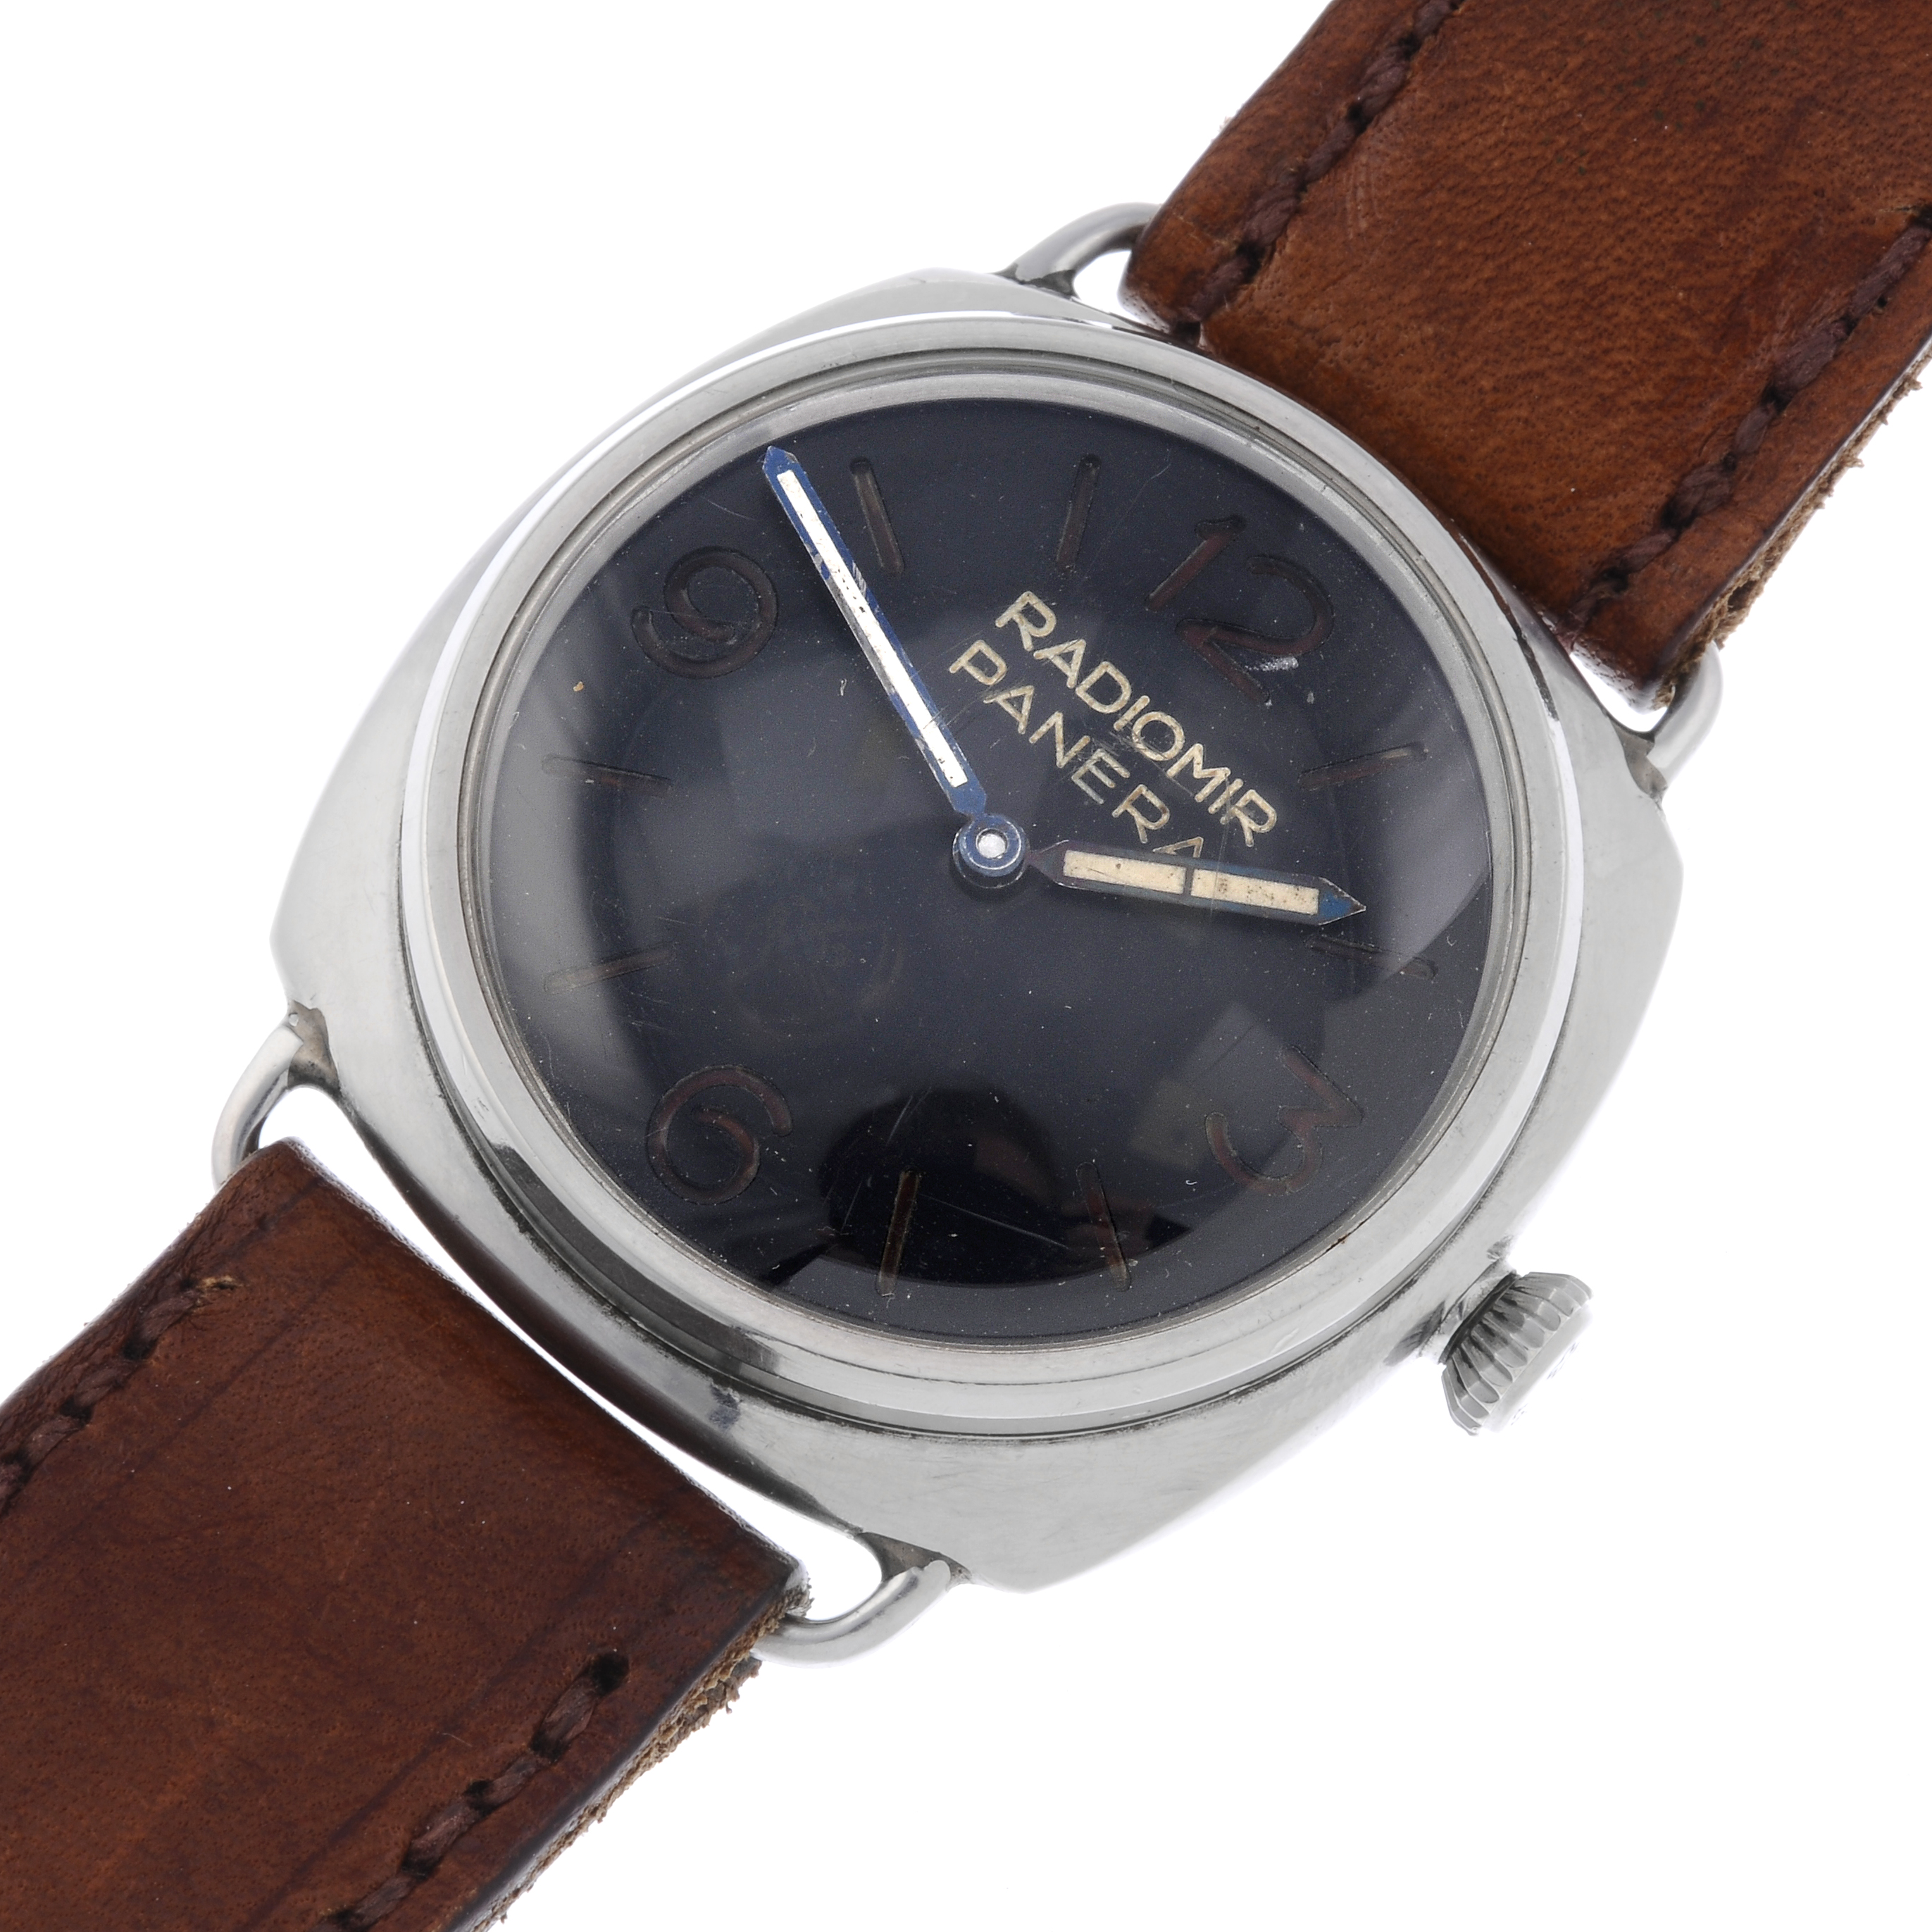 officine men luminor due oro image days rosso watch panerai leather s mens blue strap watches